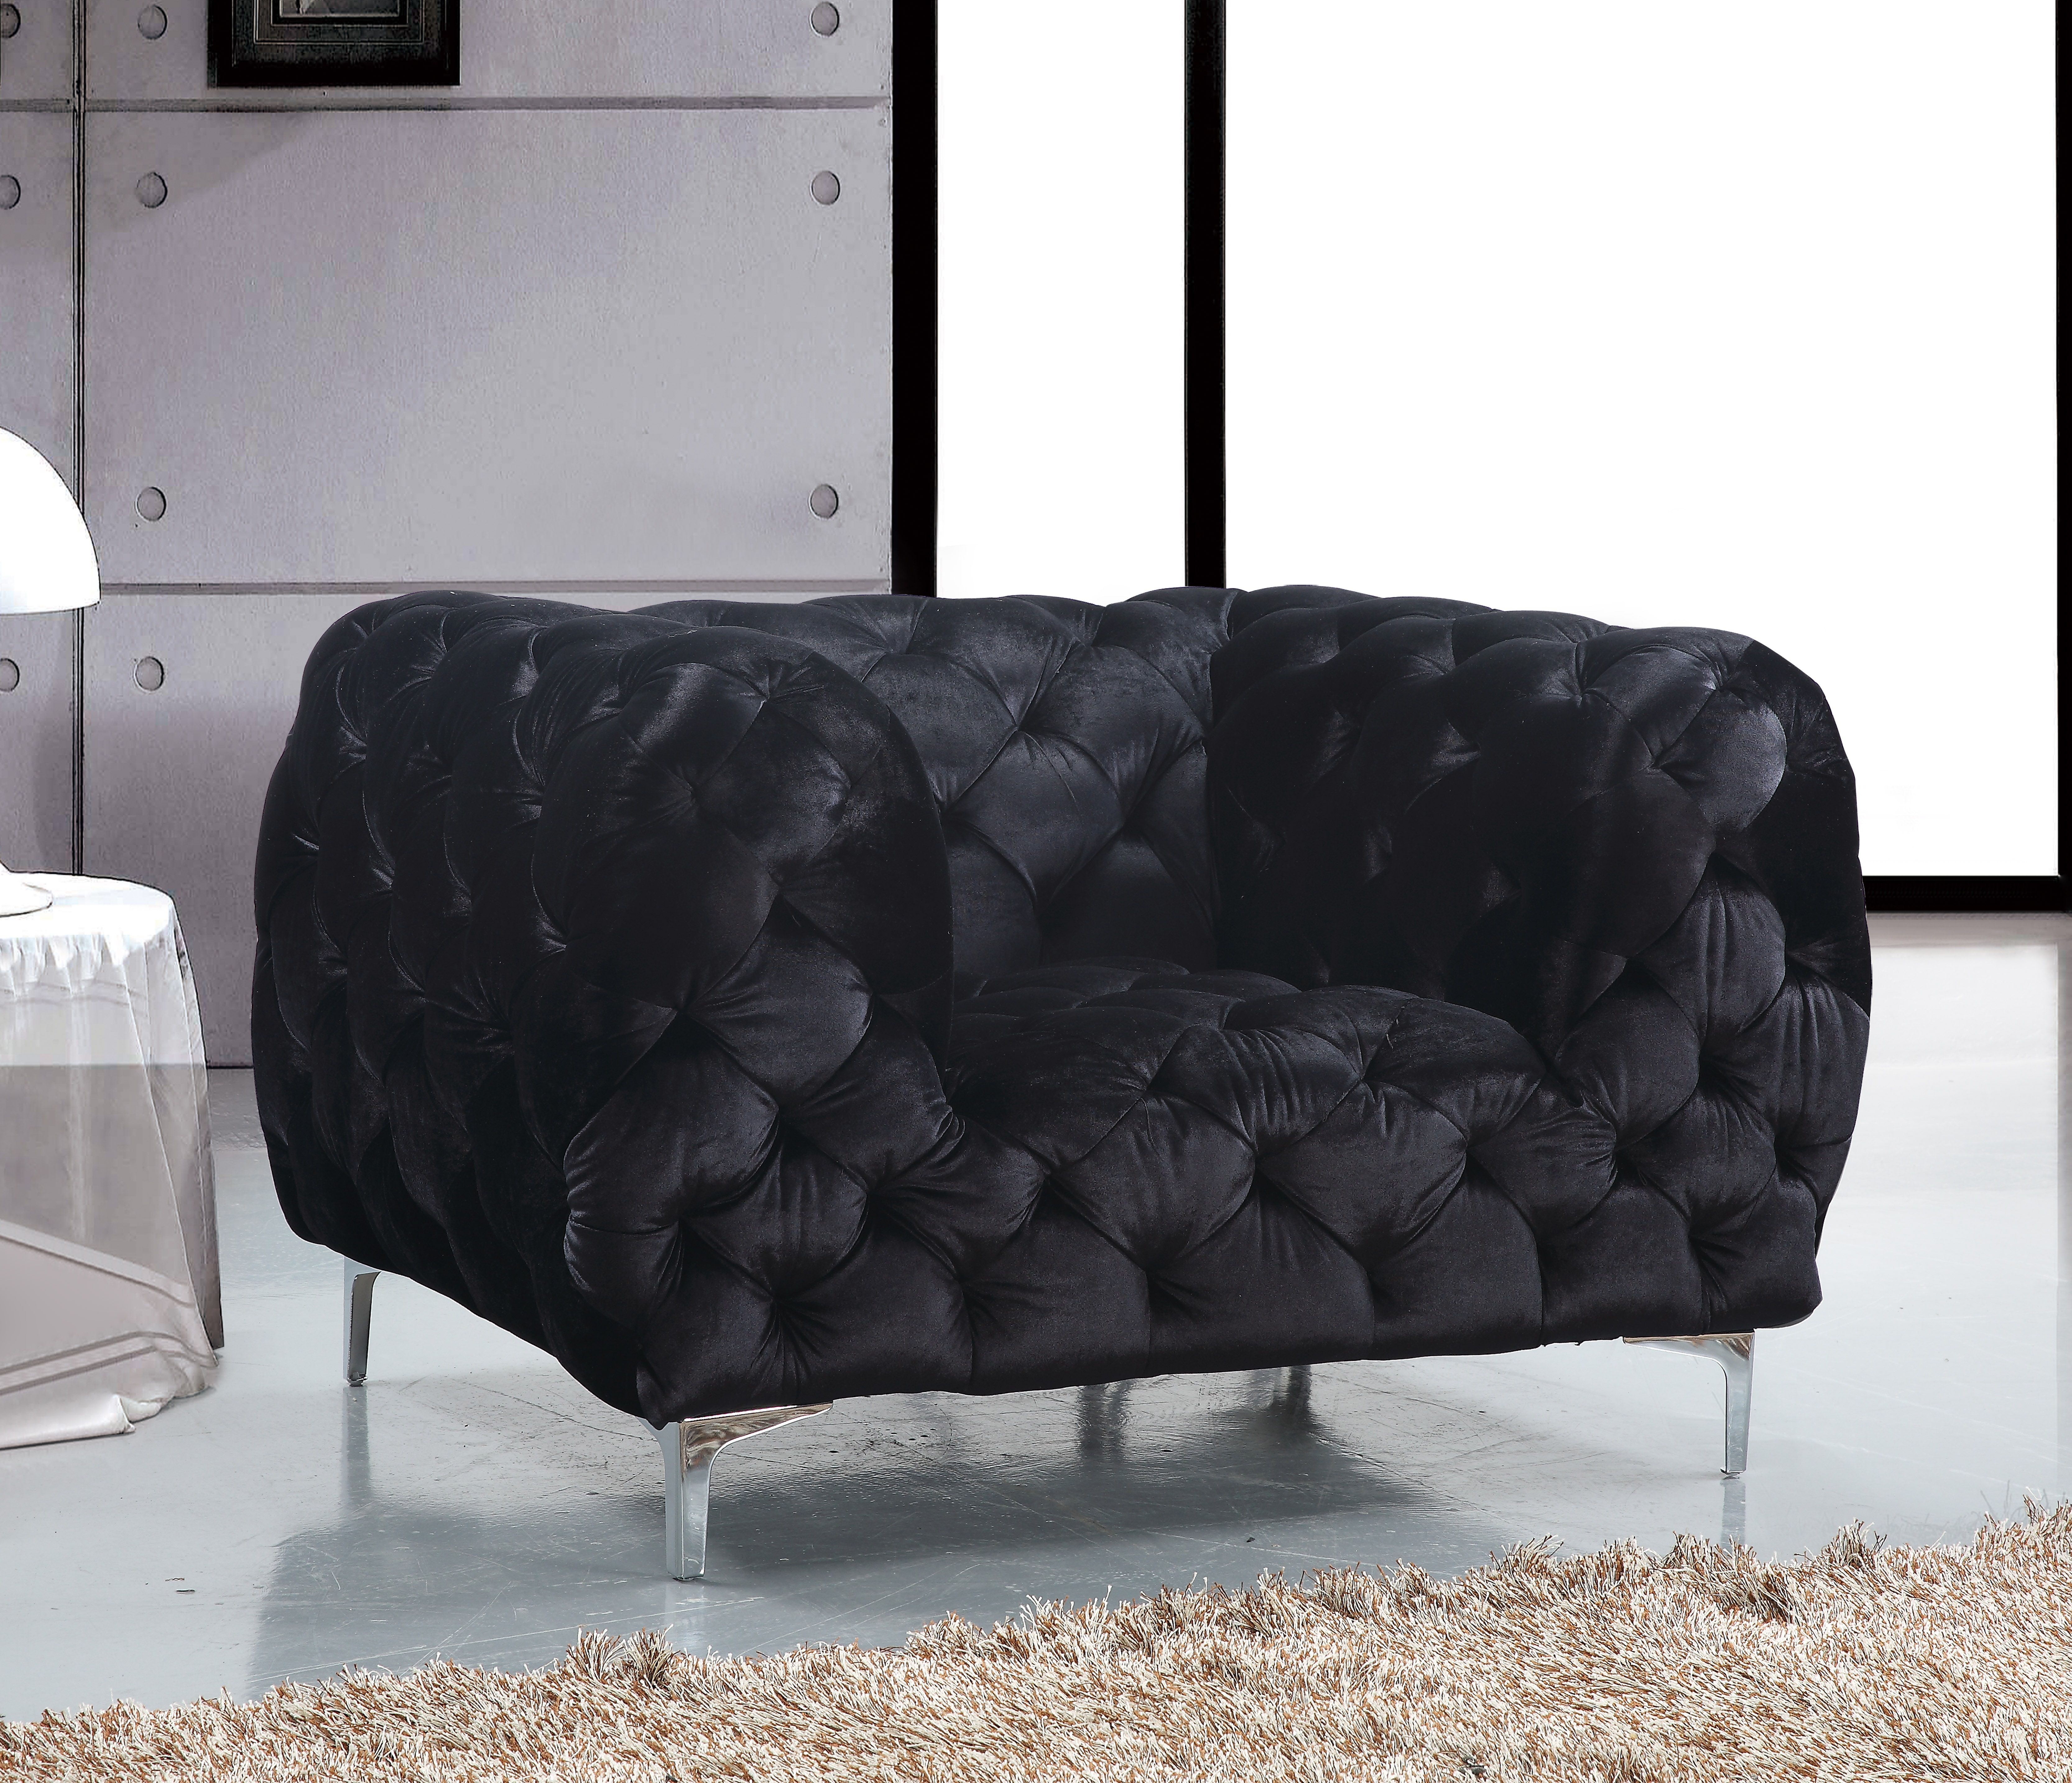 Meridian Furniture The Mercer arm chair will WOW any visitor that